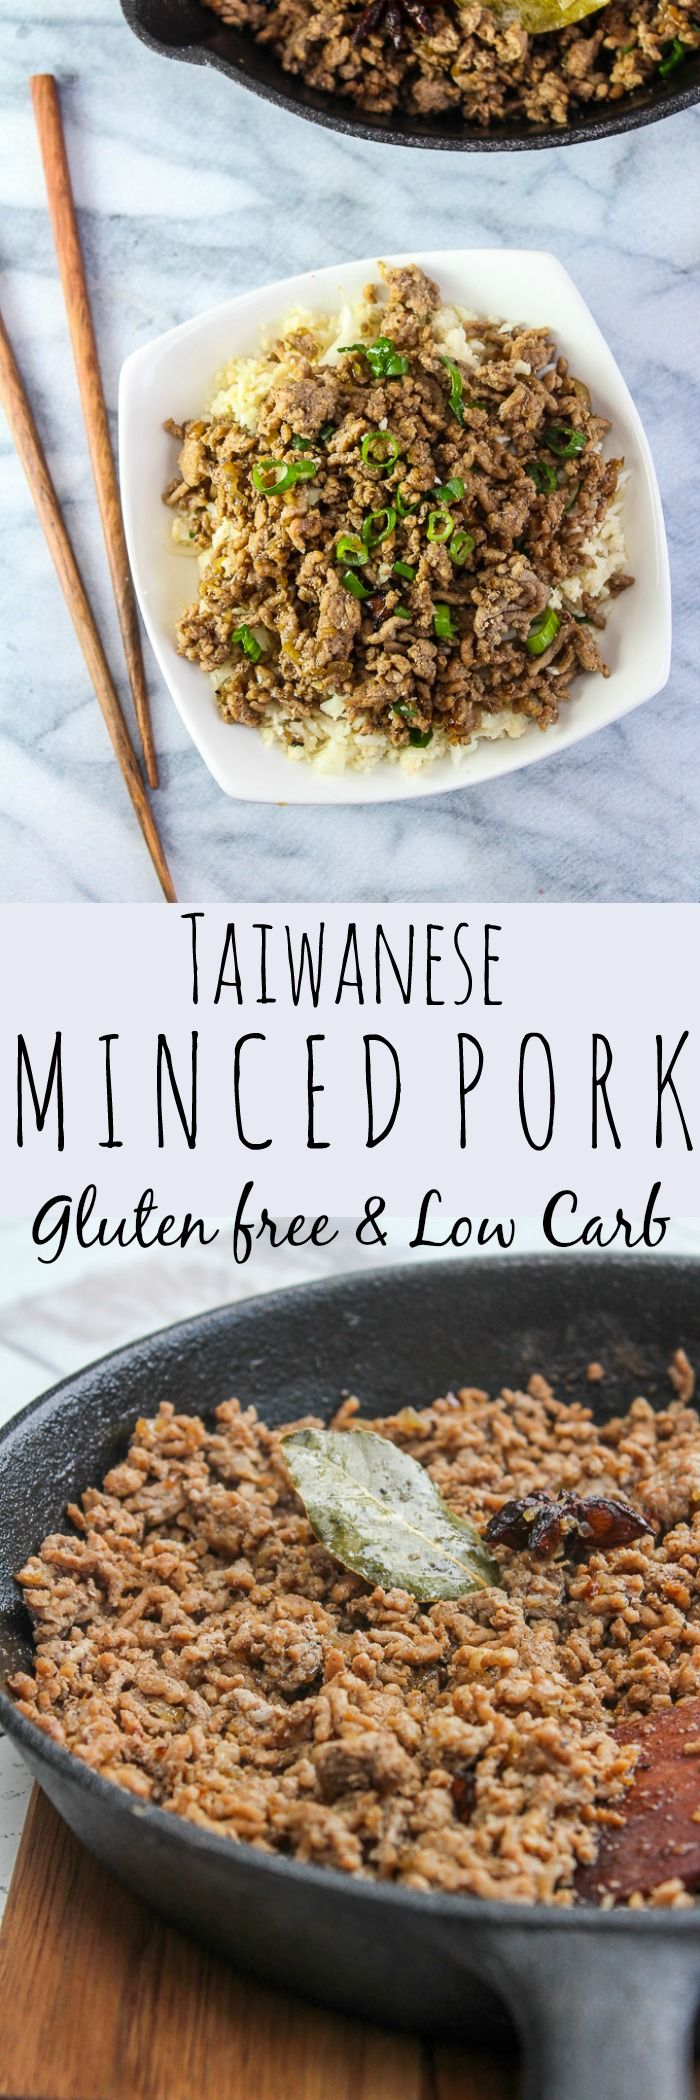 Taiwanese Minced Pork | Gluten Free & Low Carb with a Paleo option